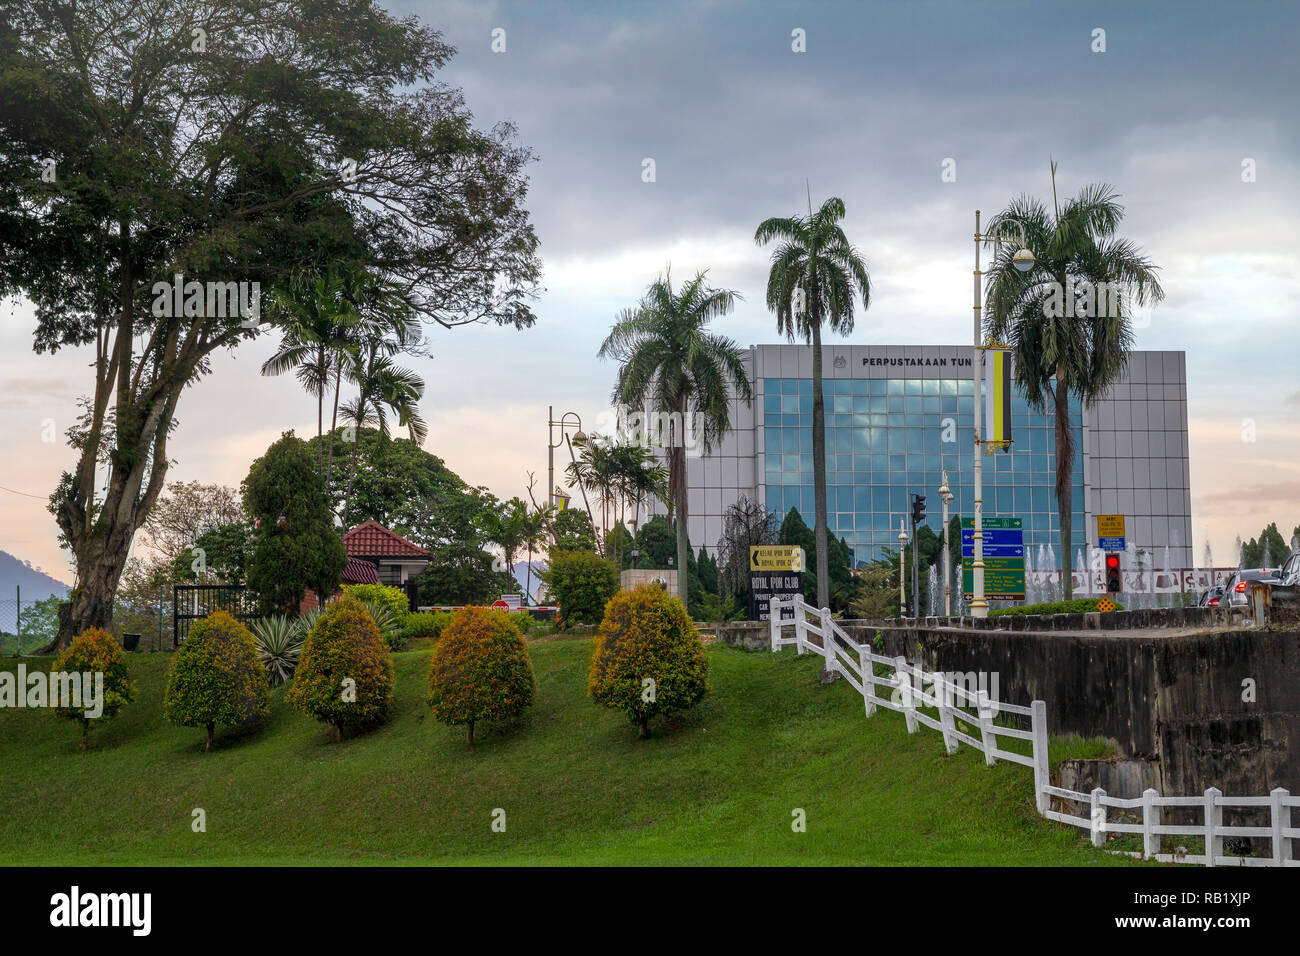 Overlooking Ipoh public library from Padang Ipoh Malaysia, under beautiful cloudy sky during rainy season - Stock Image